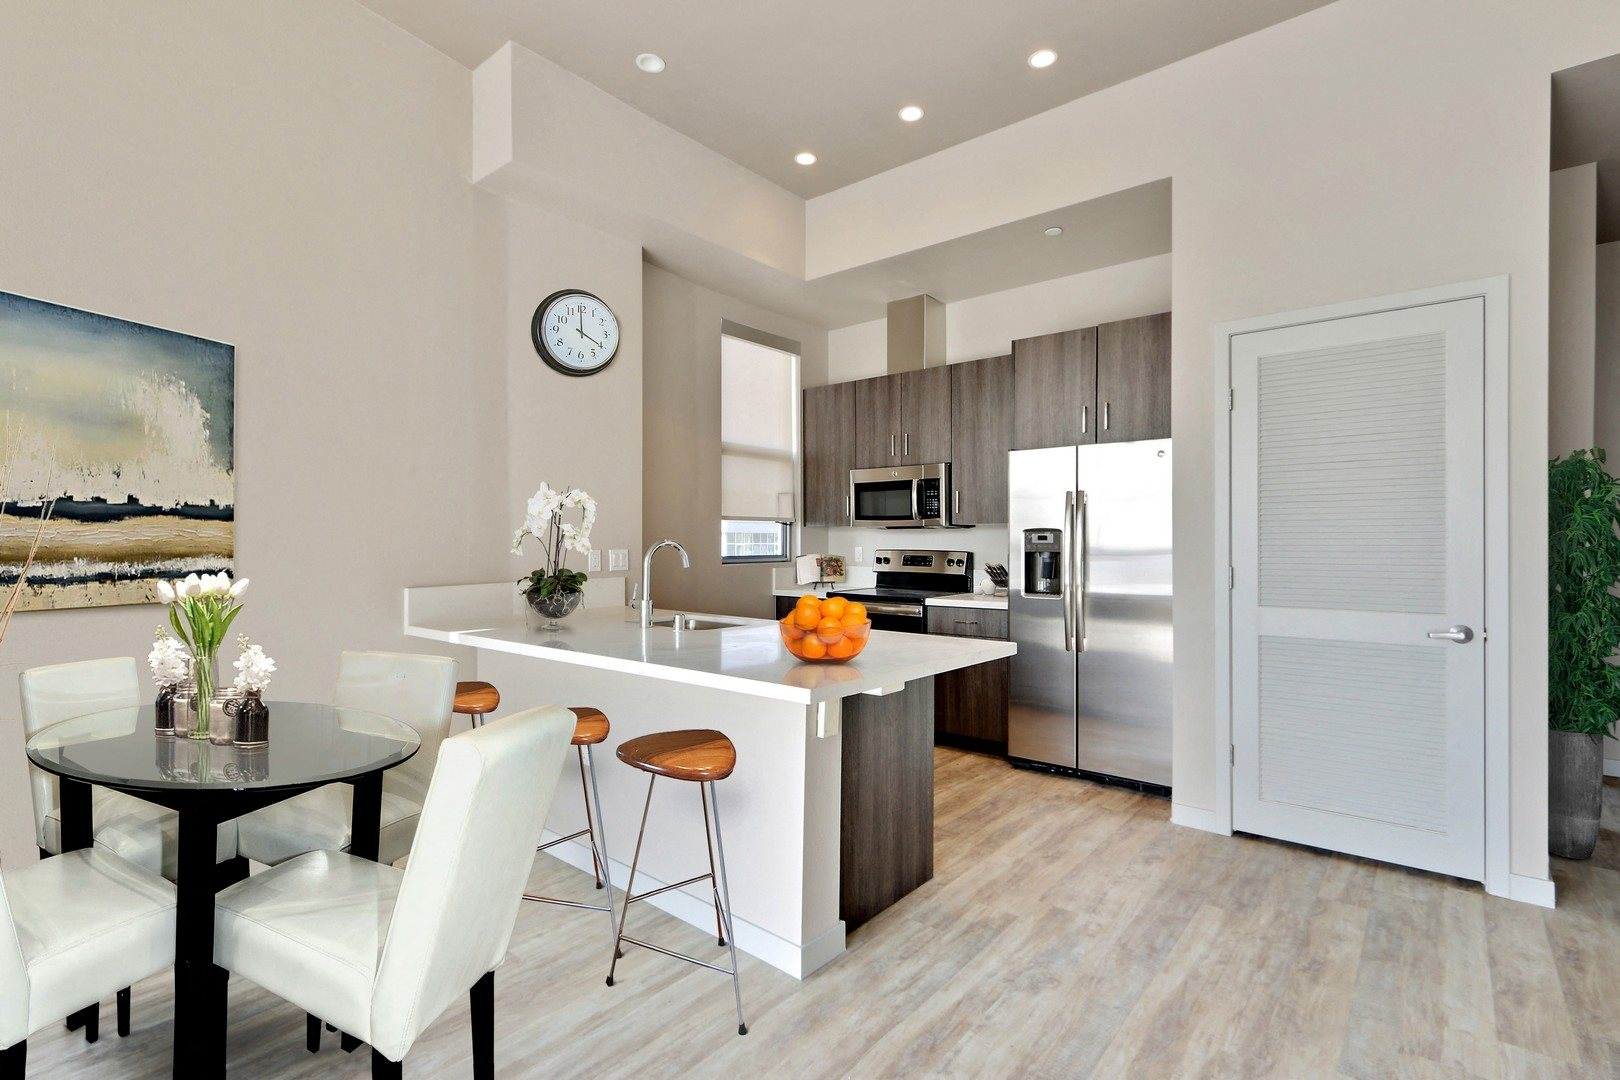 Luxury Apartments in South Park Los Angeles - E On Grand Kitchen